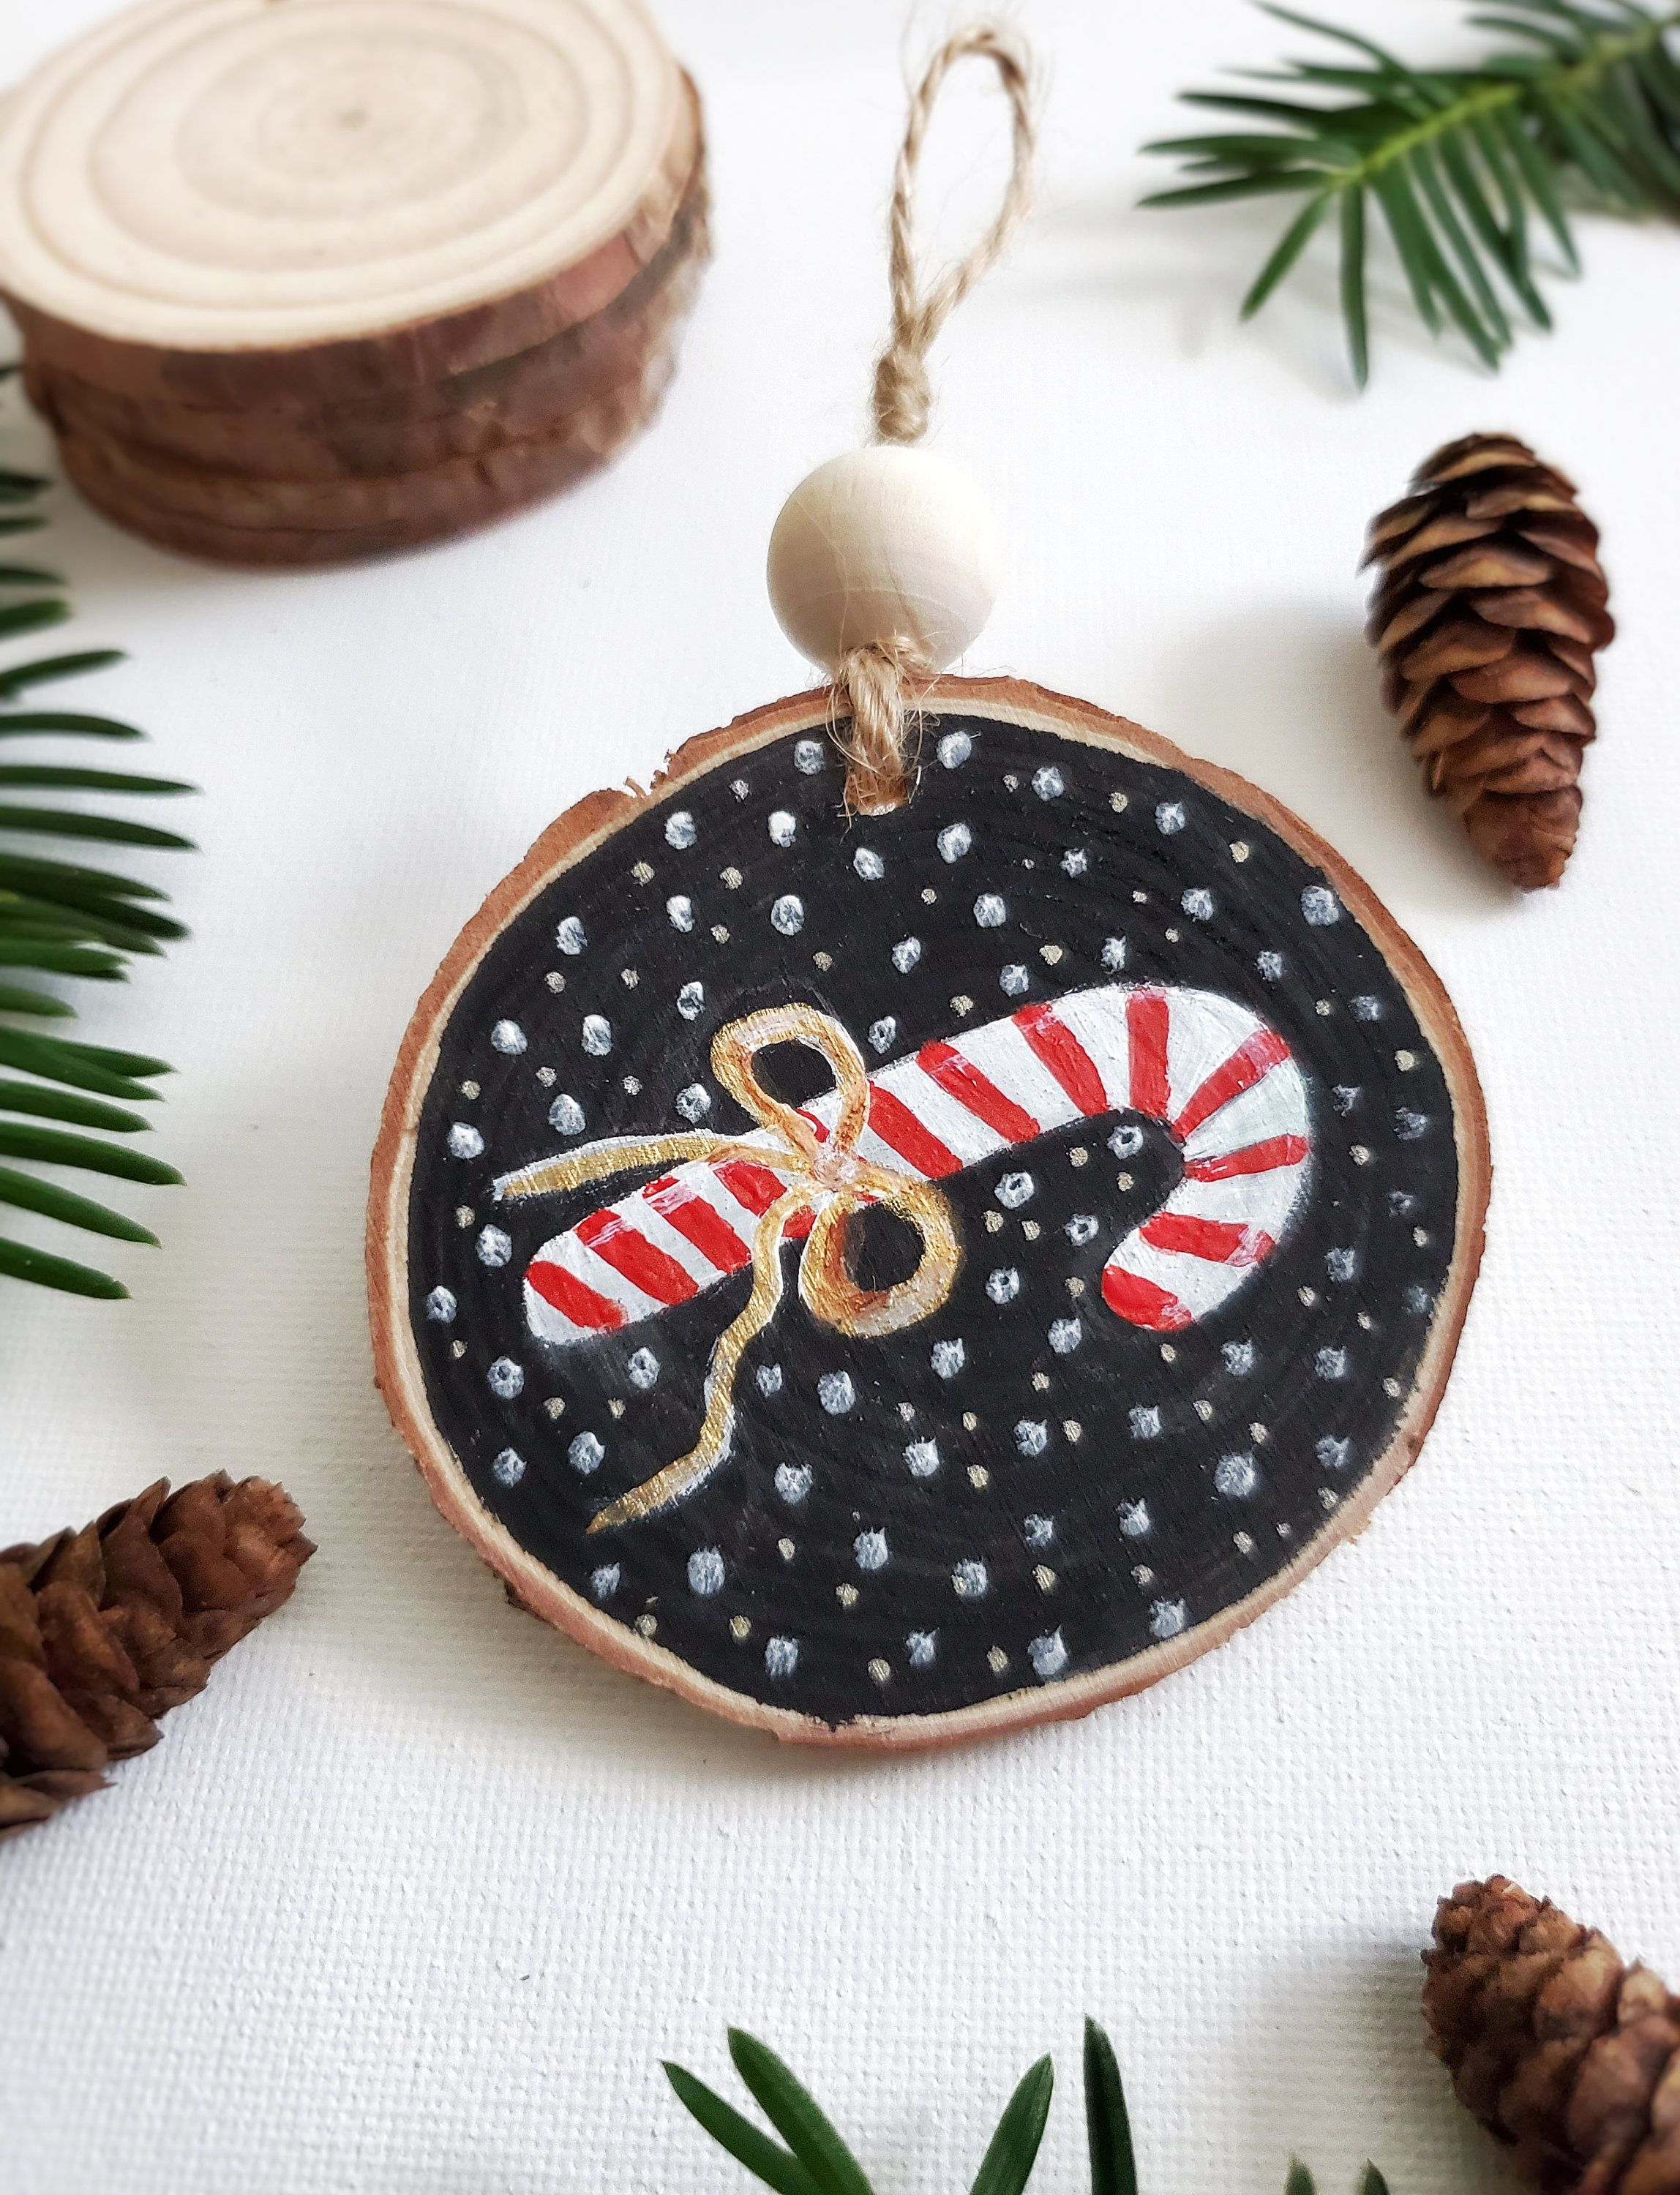 Candy Cane Ornamentchristmas Ornament Wood Slice Ornament Etsy Art Christmas Gifts Homemade Christmas Ornaments Diy Christmas Ornament Crafts